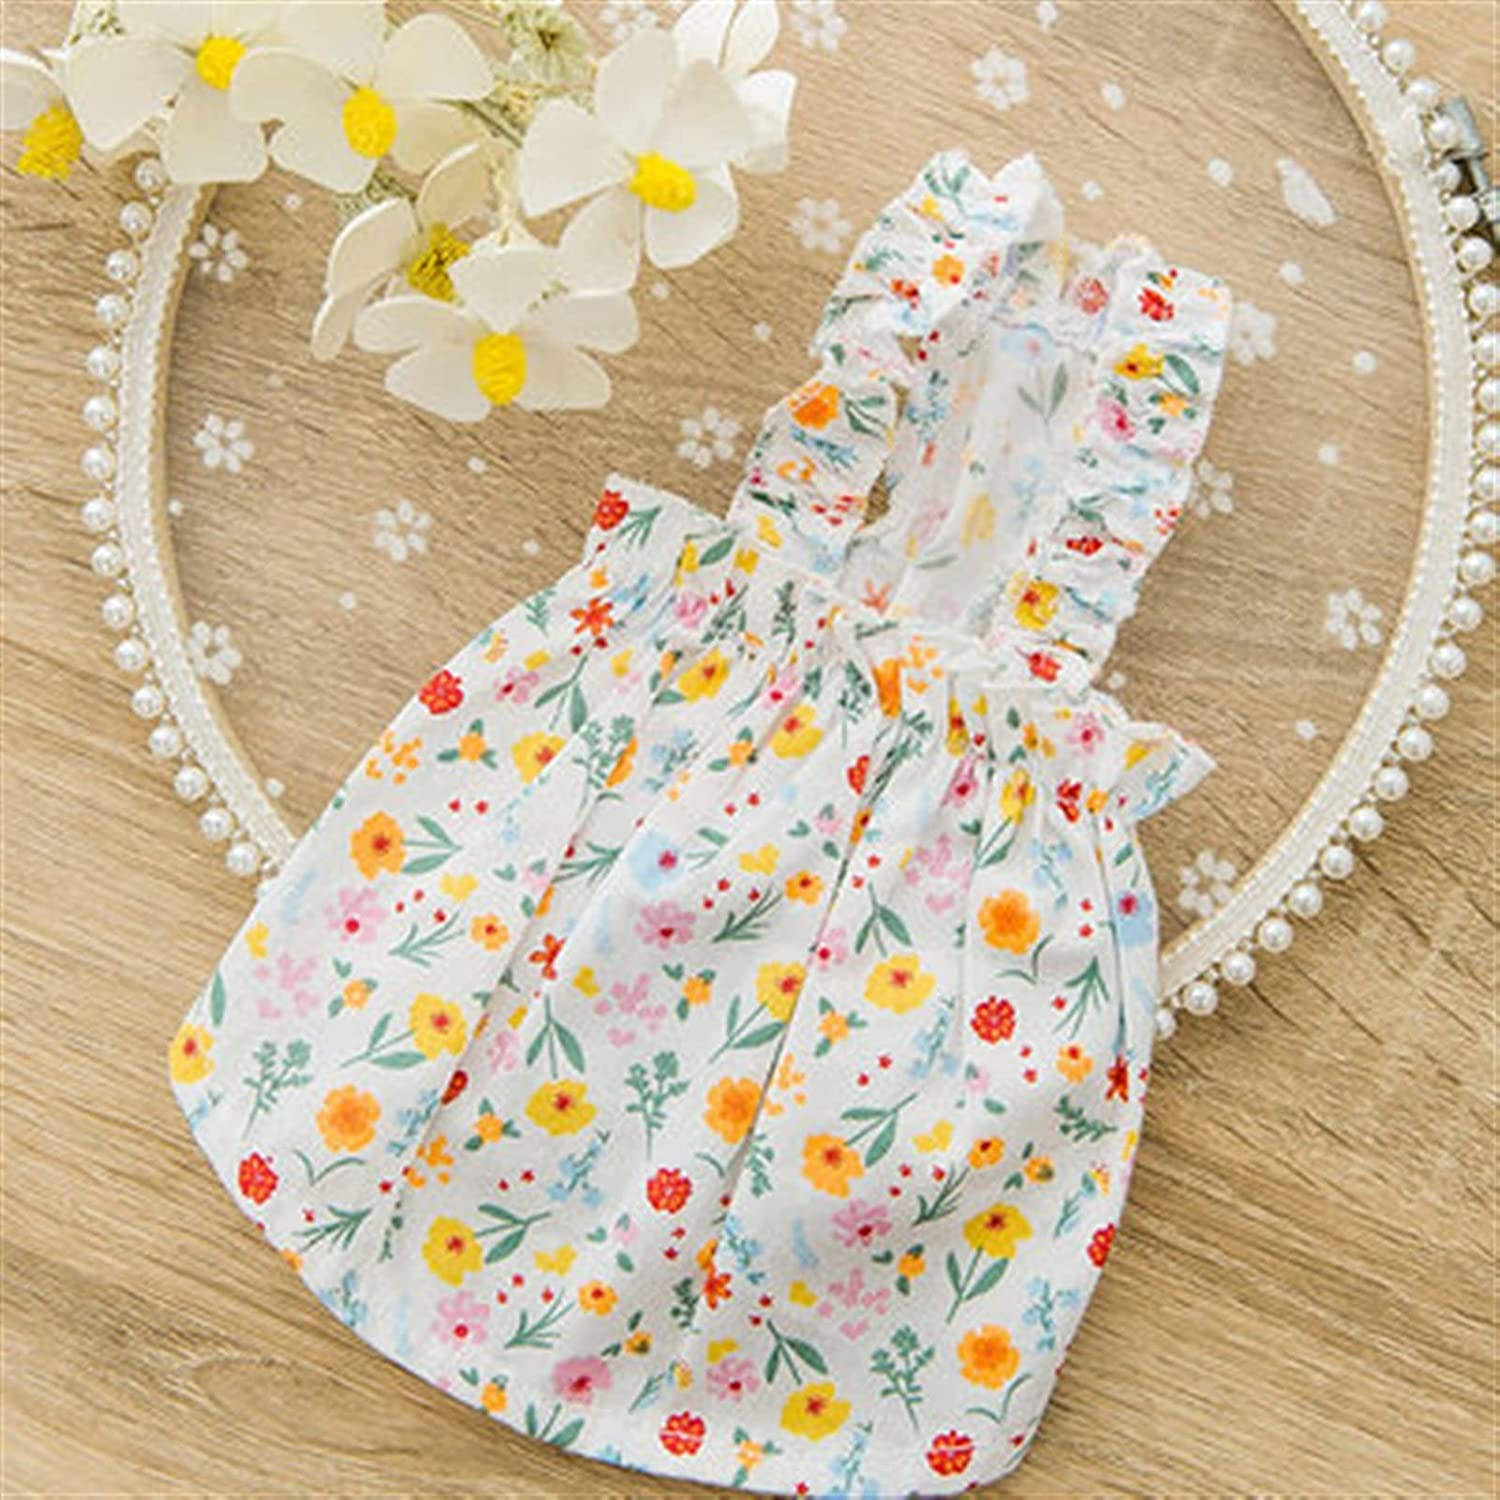 LUBINGT Outlet SALE Pet Clothes Cartoon Genuine Free Shipping Dog Floral Clothing for Dogs